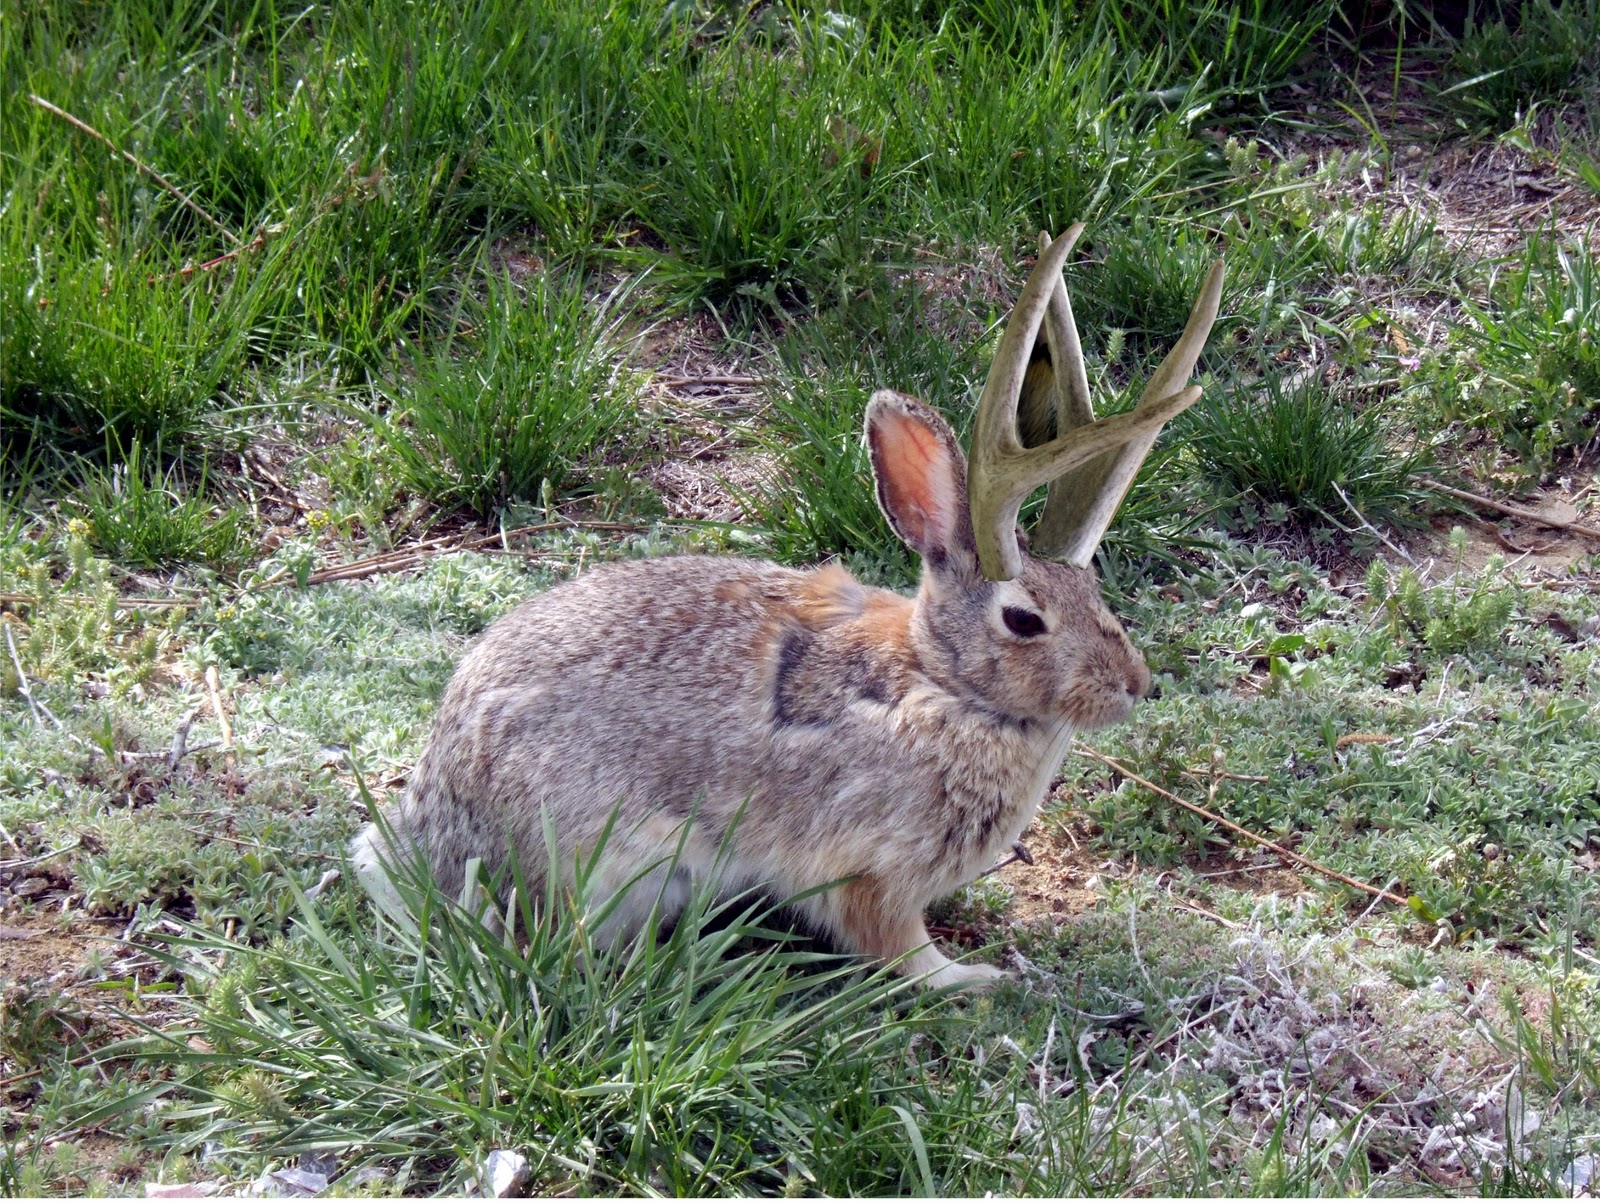 and a LIVE jackalope visited our campsite! (Not really you know how ...